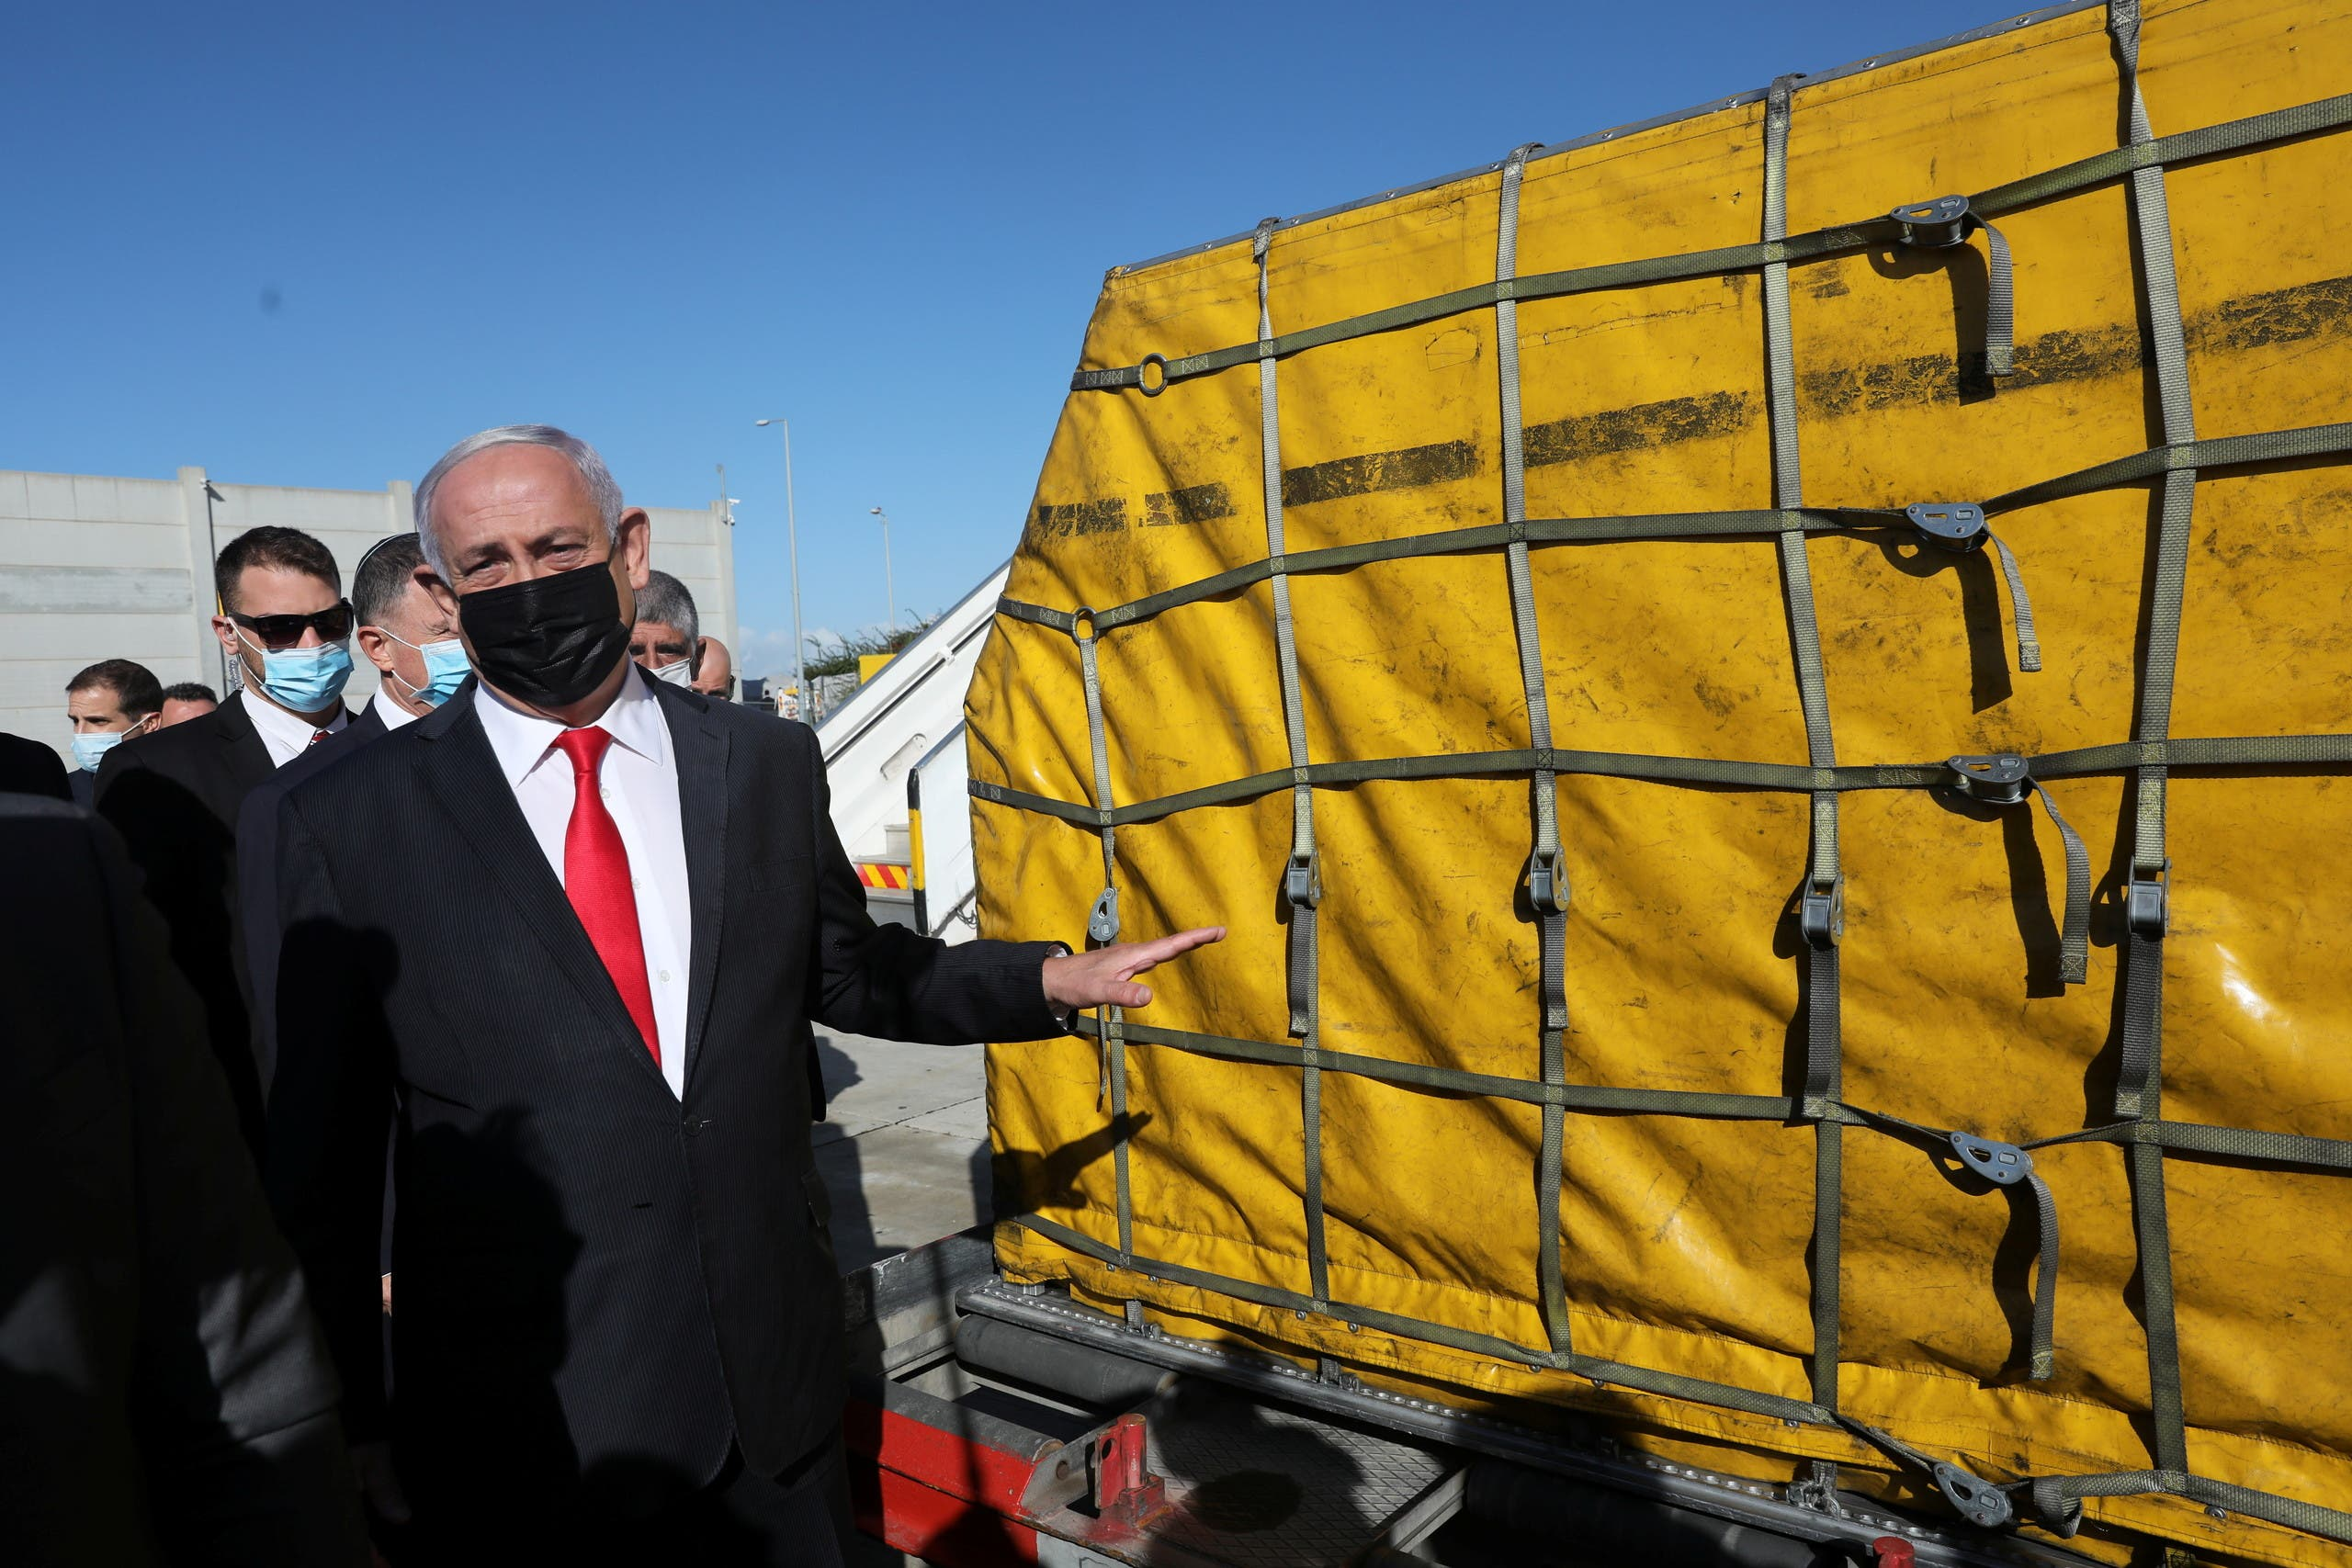 Israeli Prime Minister Benjamin Netanyahu attends the arrival of a DHL plane carrying a first batch of Pfizer/BioNTech COVID-19 vaccine, following the outbreak of the coronavirus disease (COVID-19), at Ben Gurion Airport near Tel Aviv, Israel December 9, 2020. (Reuters)